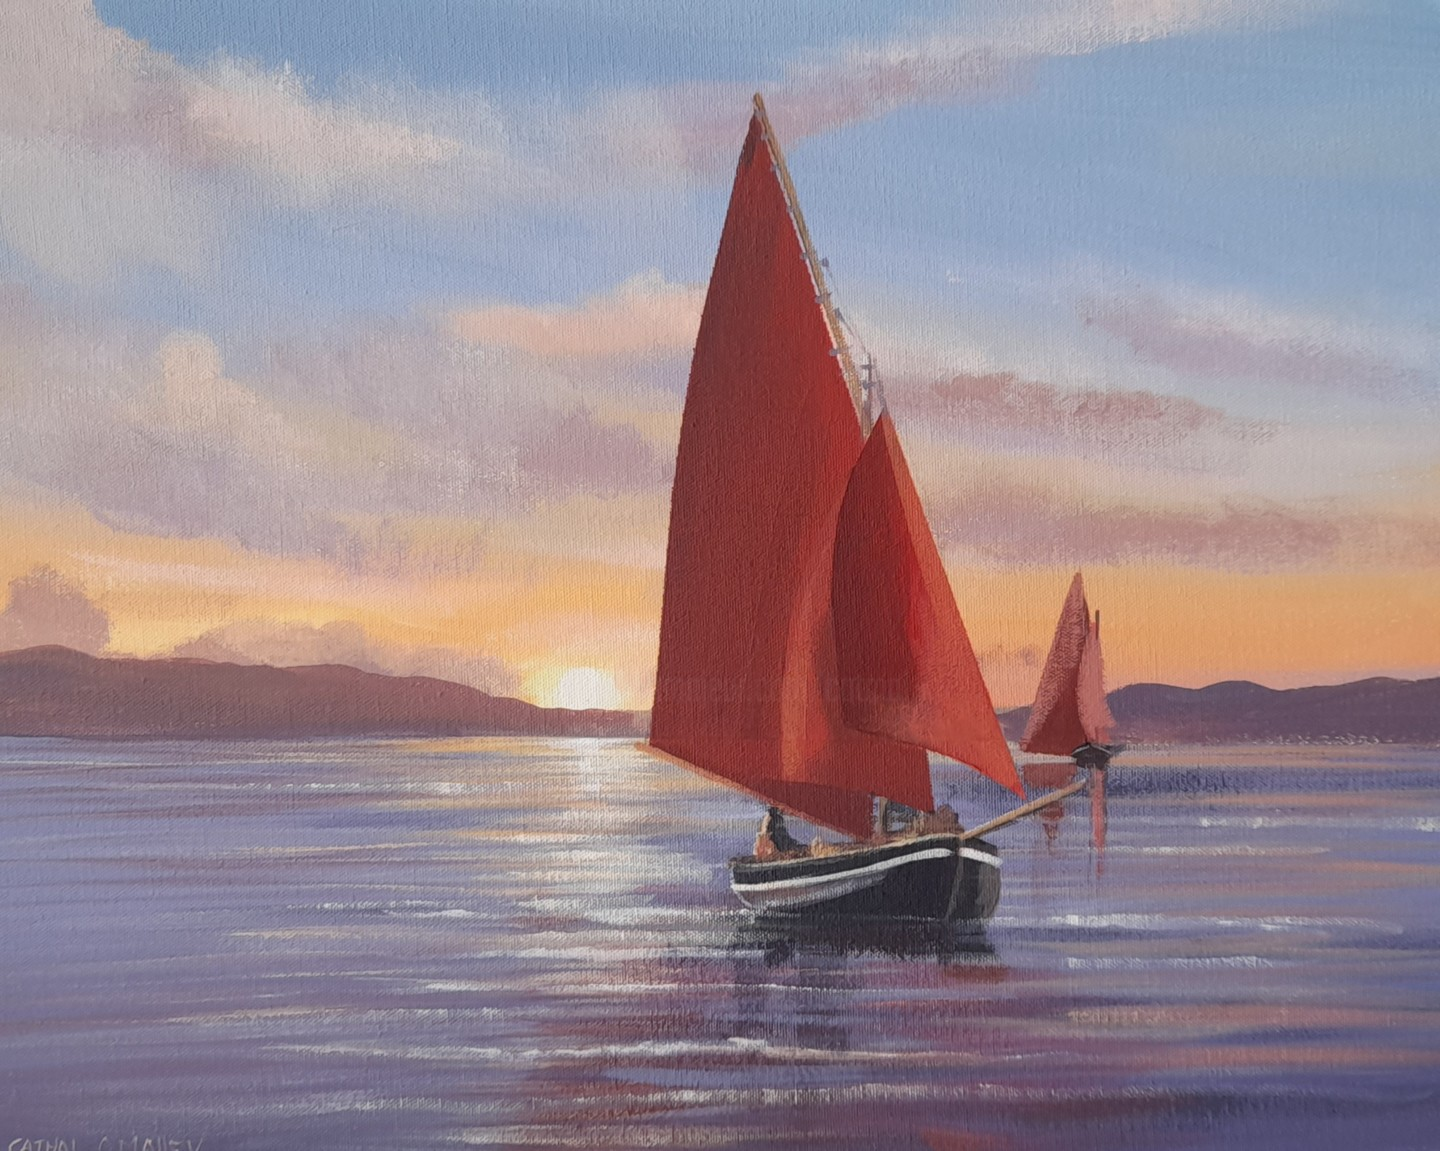 Cathal O Malley - Sunset  over galway bay